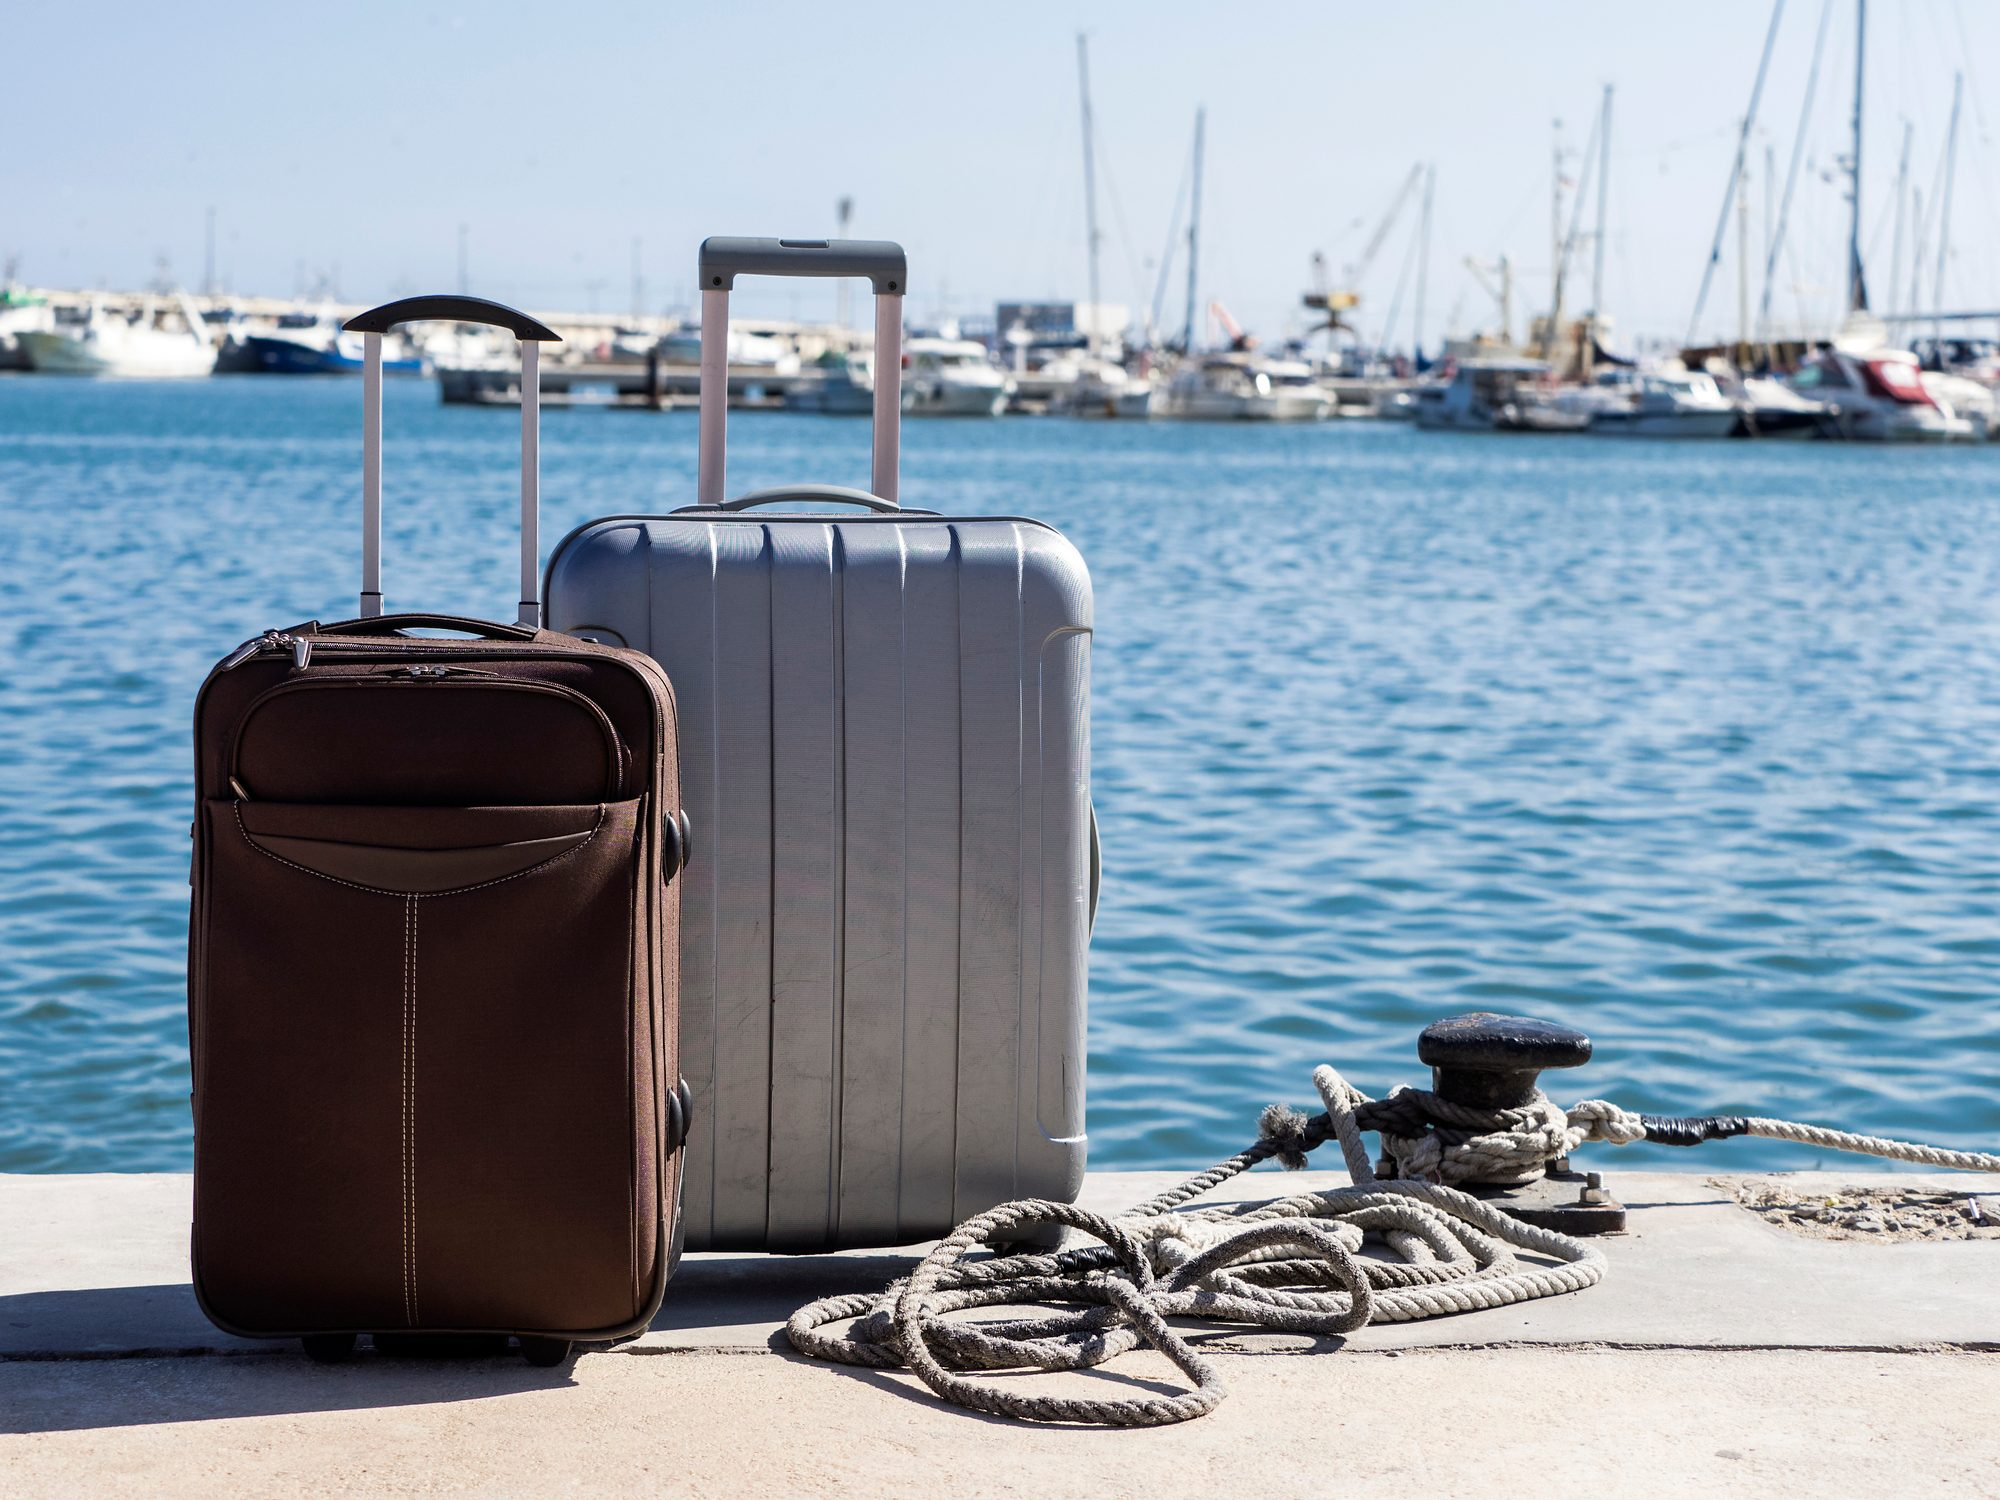 Suitcases prepared next to a pier at sea to board a passenger ship